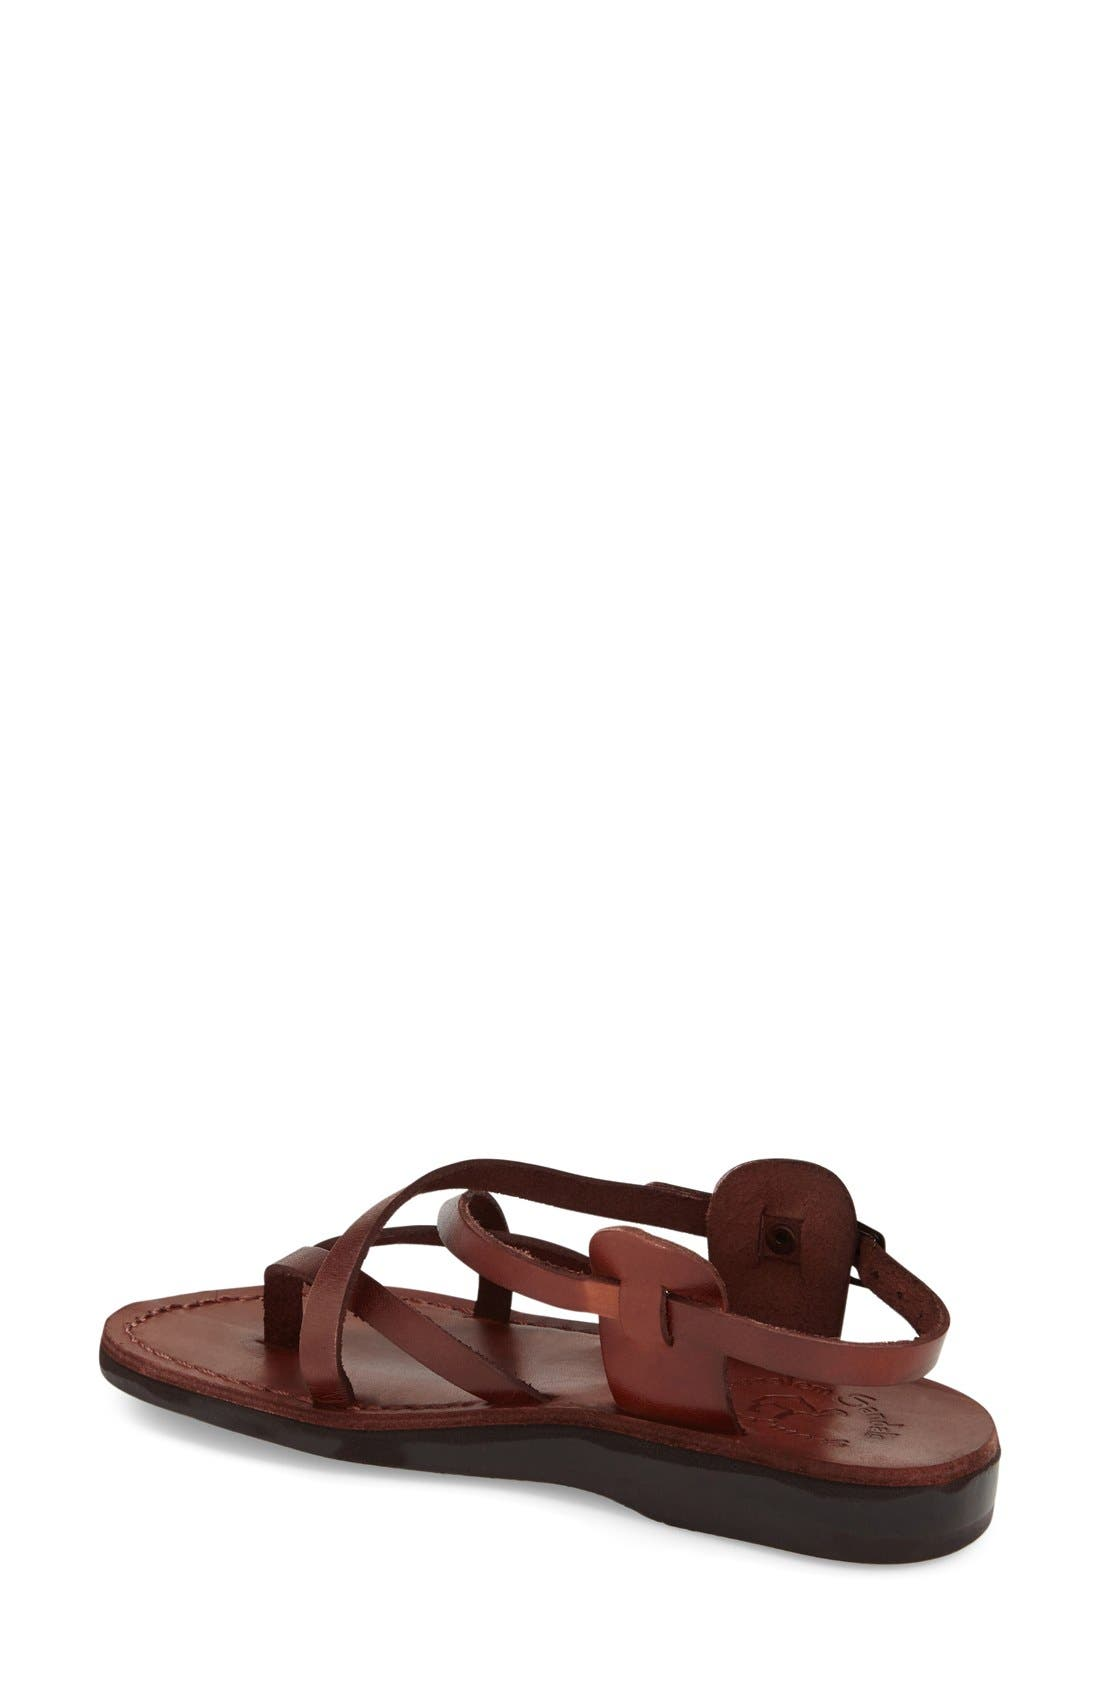 'Tamar' Strappy Sandal,                             Alternate thumbnail 8, color,